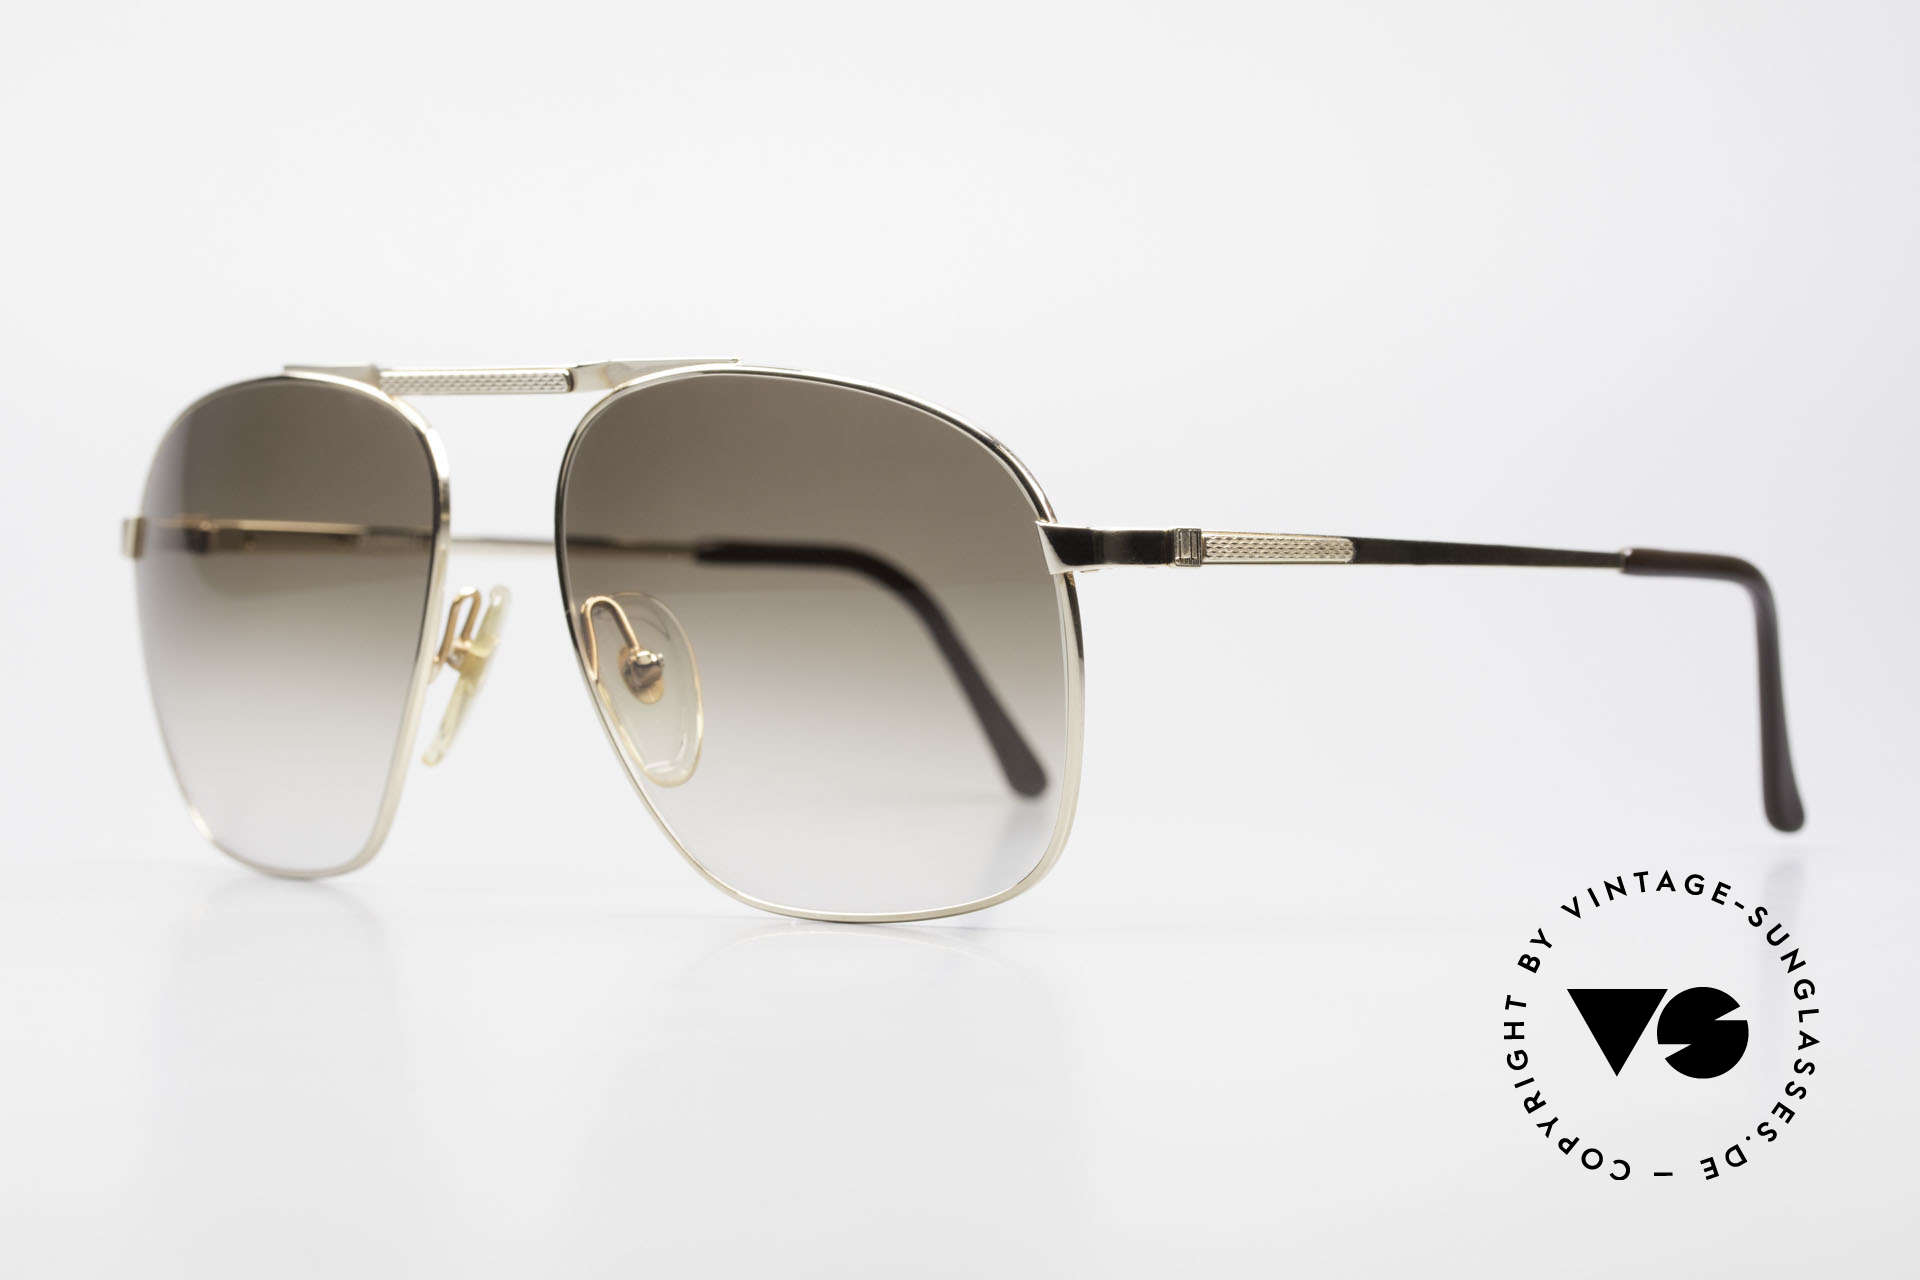 Dunhill 6046 Old 80's Aviator Luxury Glasses, gold-plated metal frame with brown gradient lenses, Made for Men